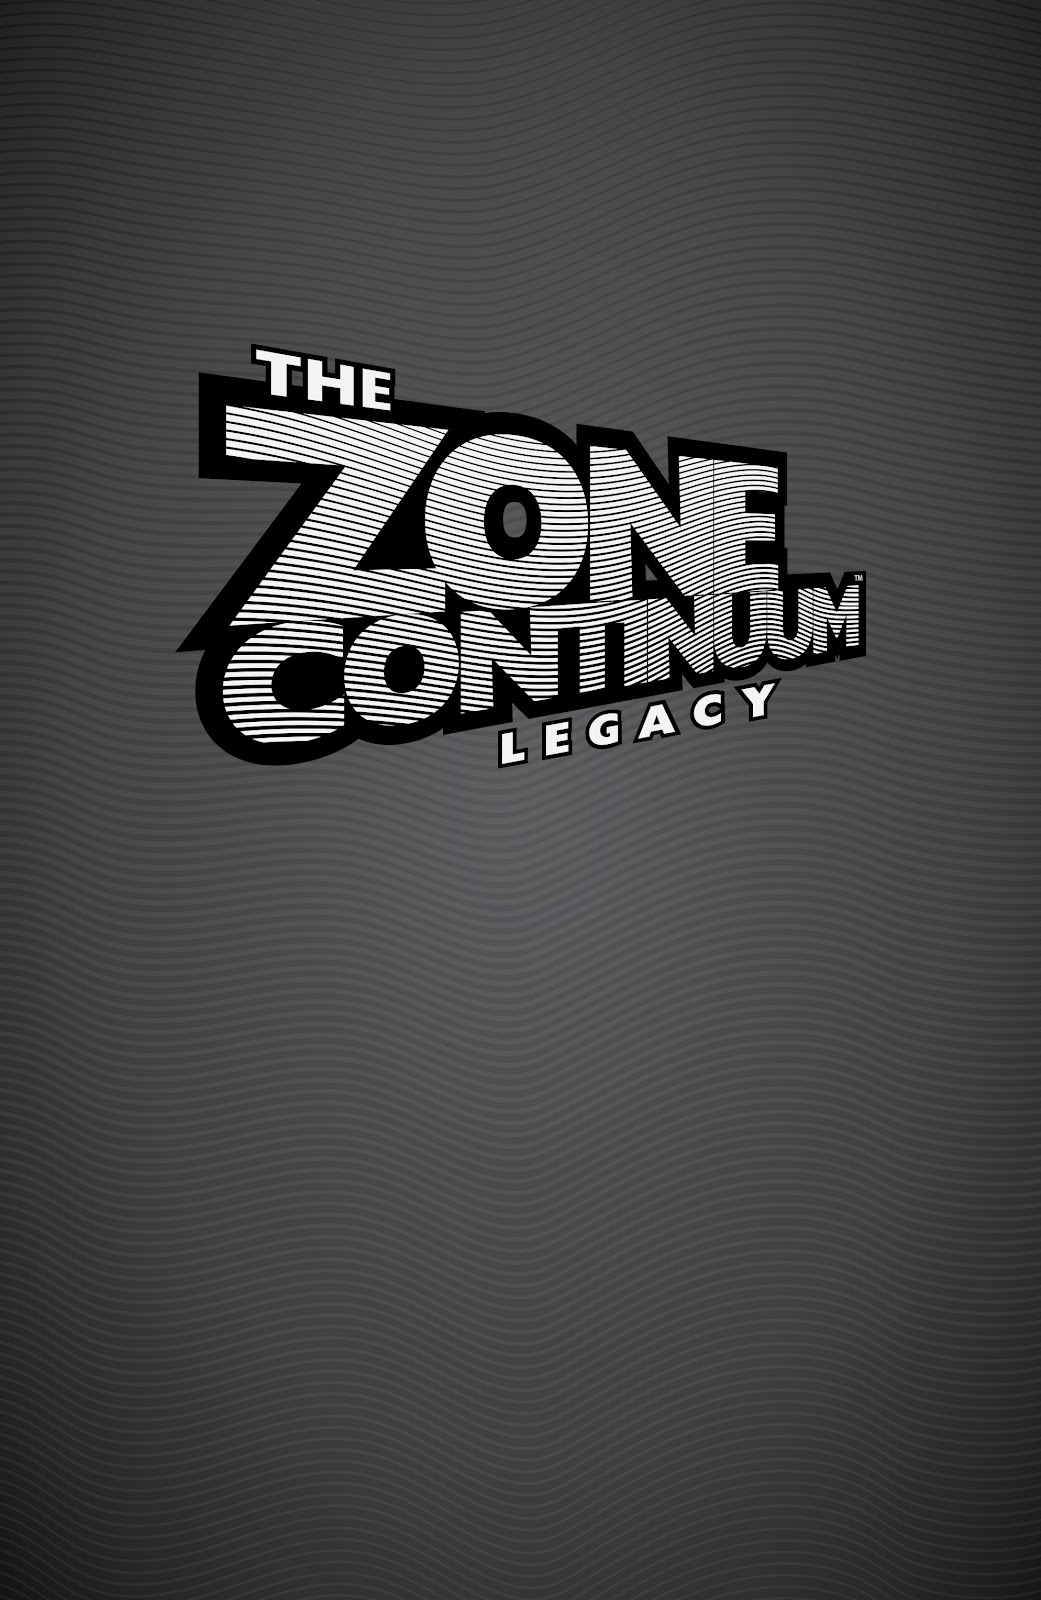 Read online The Zone Continuum: Legacy comic -  Issue # TPB - 3